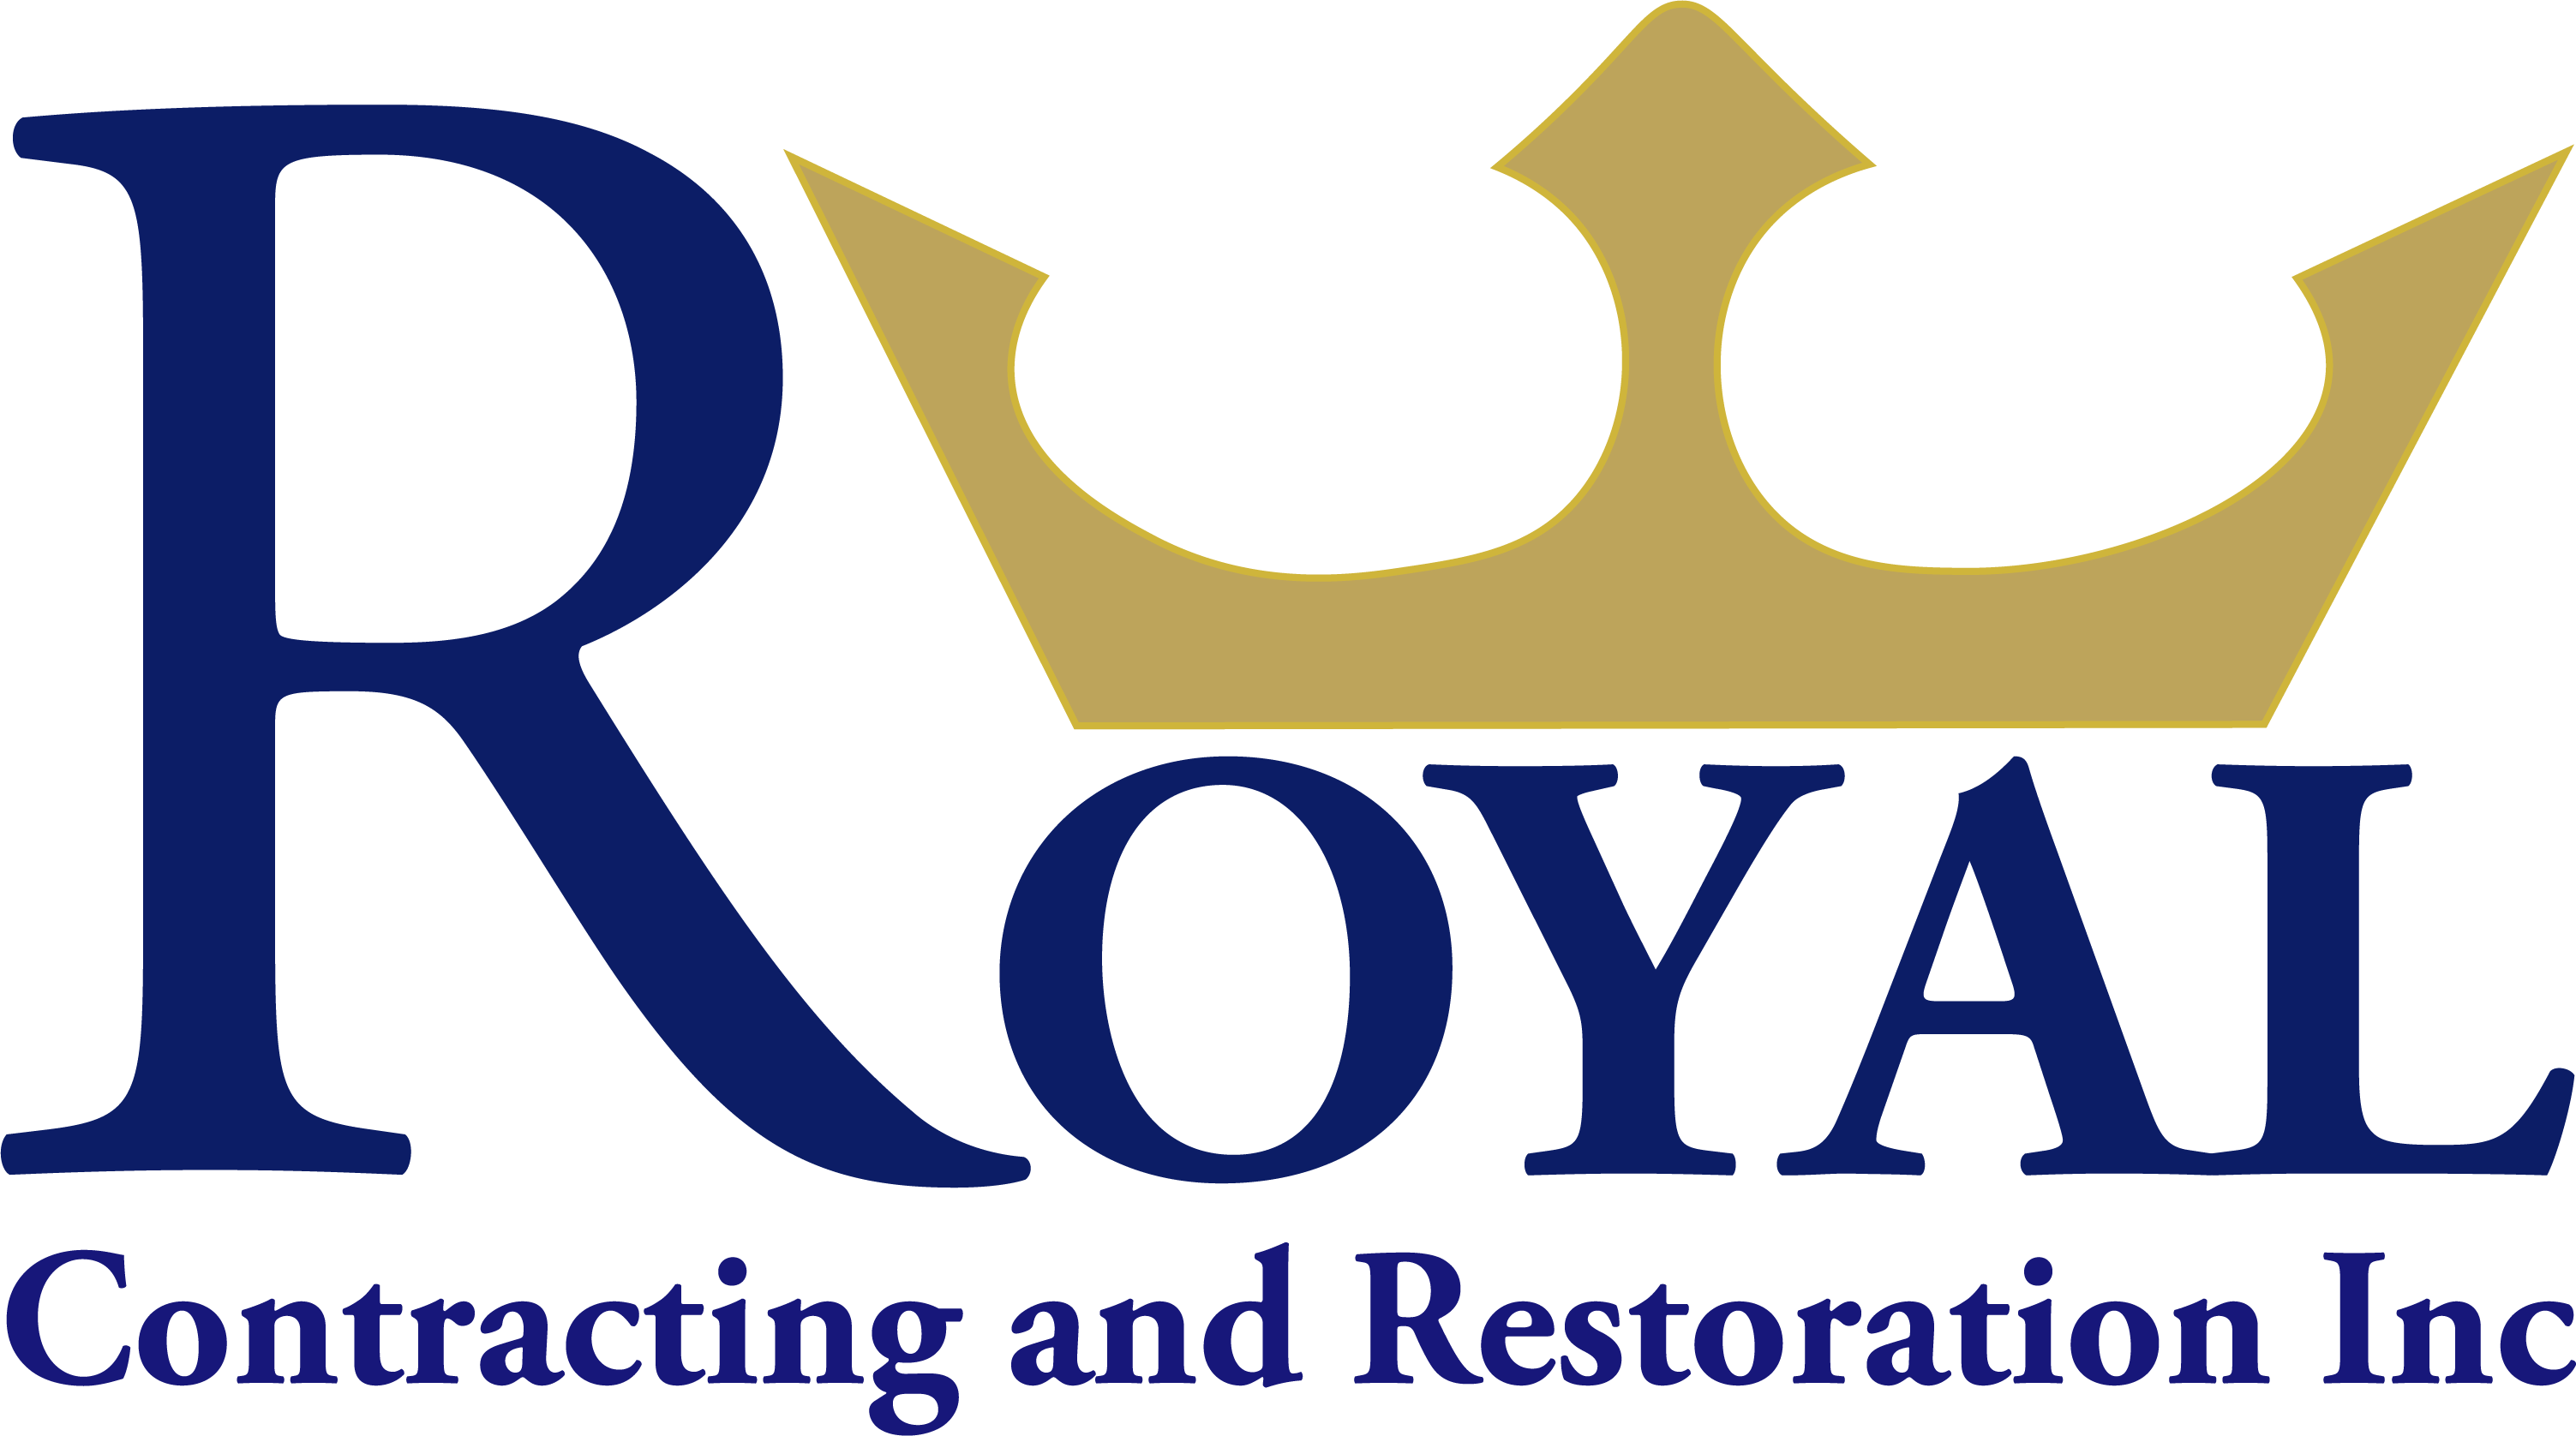 Royal Contracting and Restoration Inc.